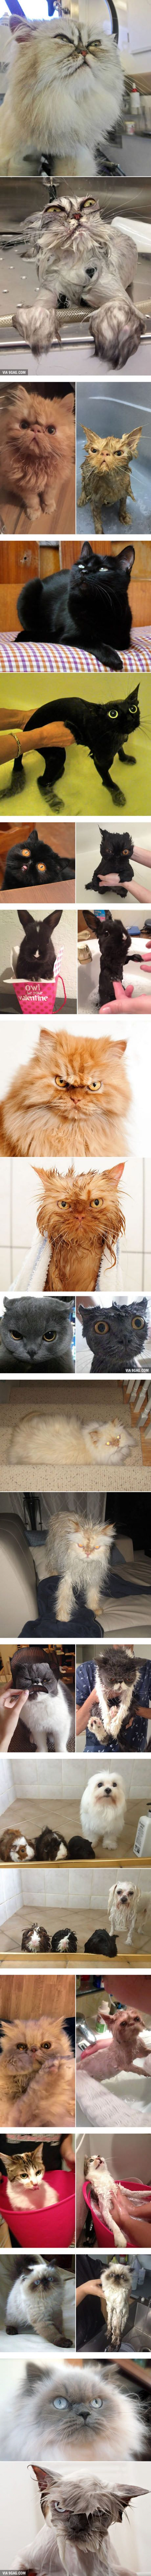 Before And After Bath                                                       …